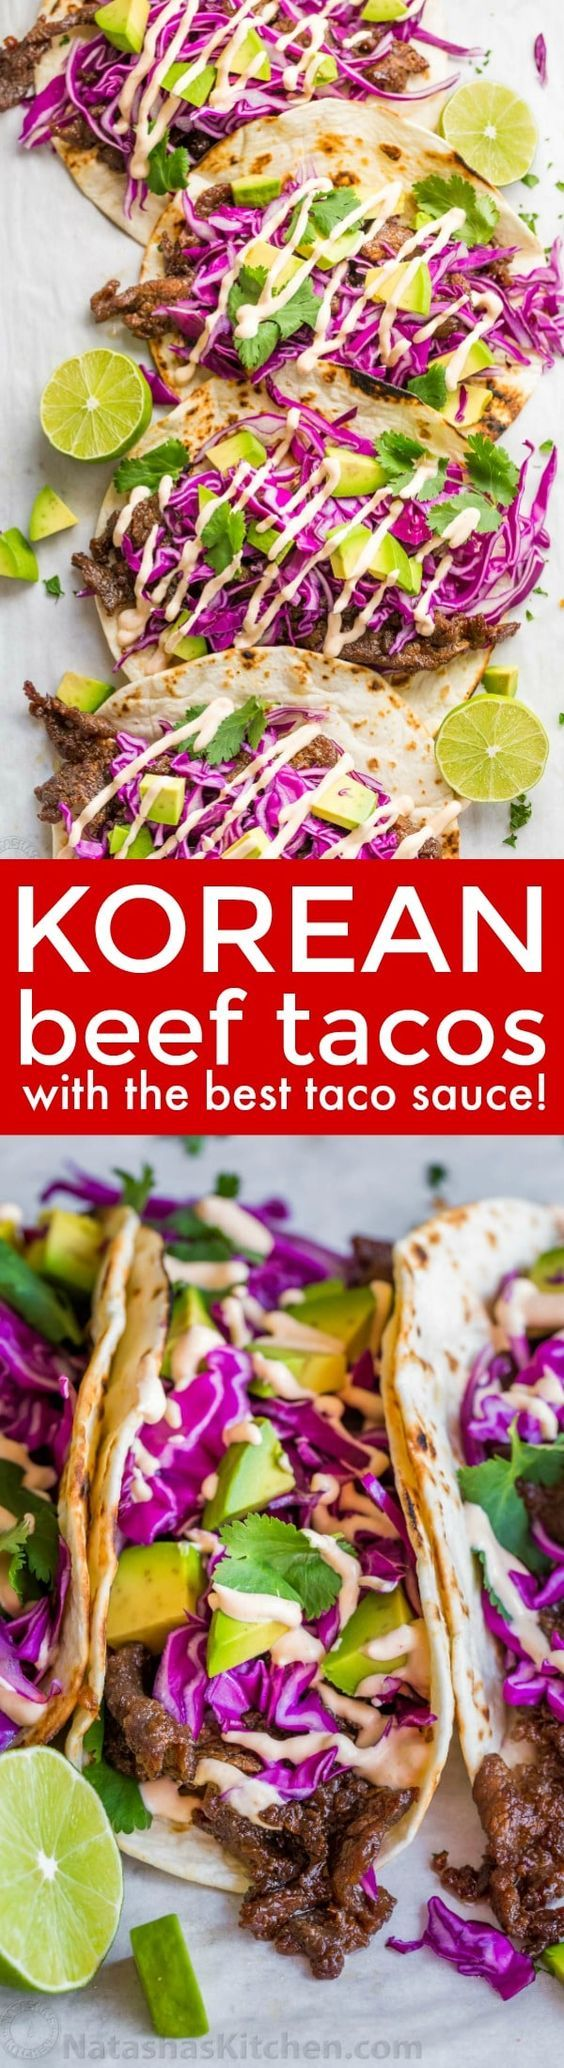 Fully loaded Korean Beef Tacos with flavorful Beef Bulgogi. Don't skip the best taco sauce! Every bite of these Korean Beef Tacos is a flavor explosion! | natashaskitchen.com